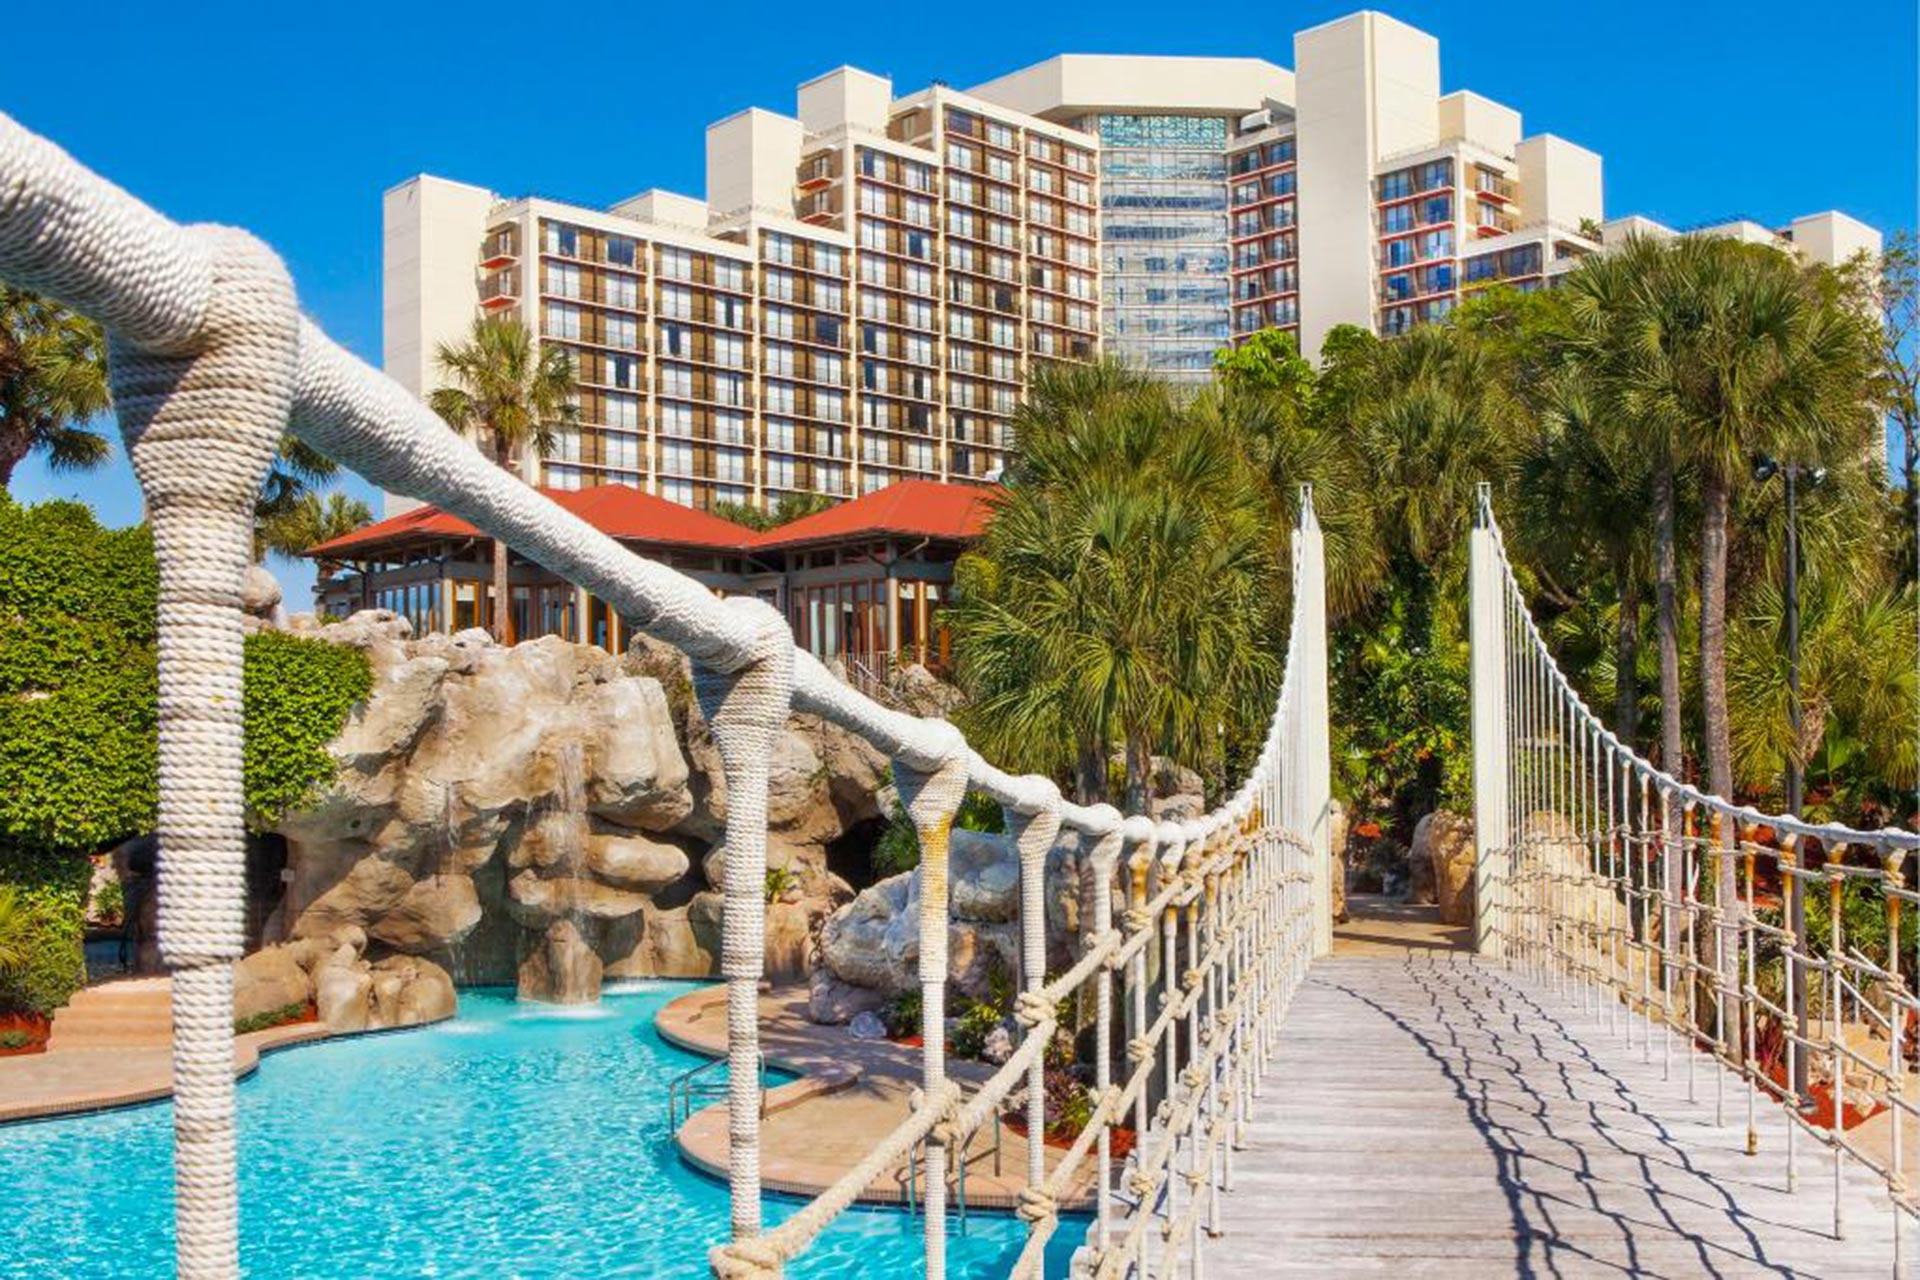 Hyatt Regency Grand Cypress in Orlando